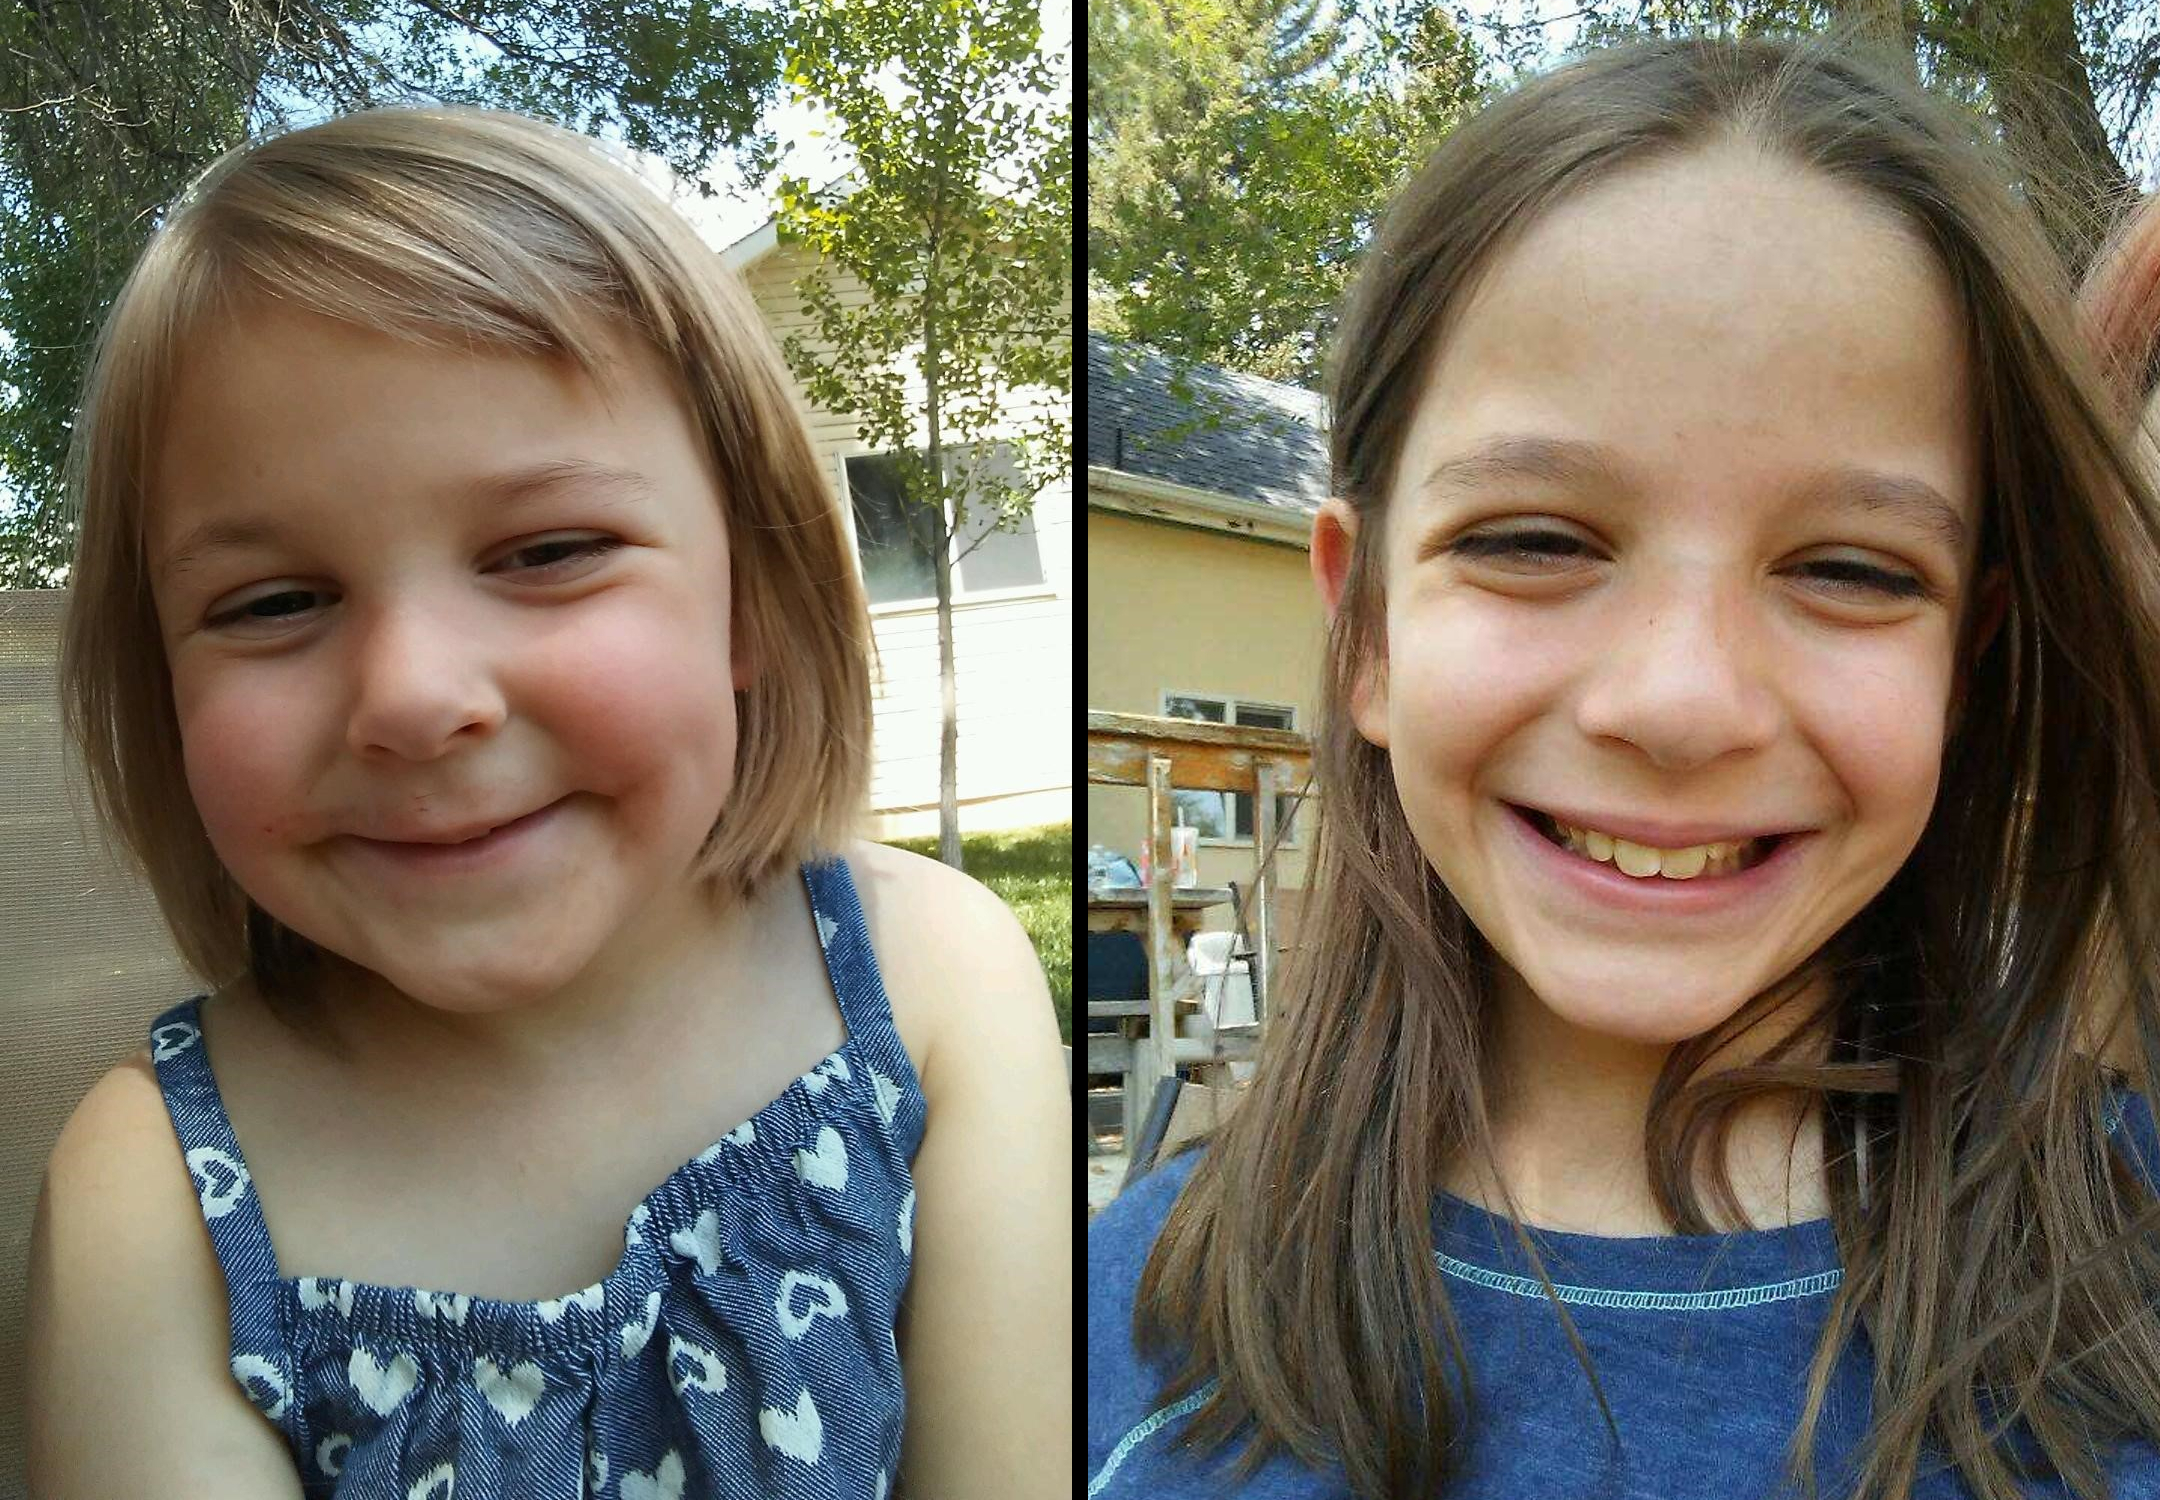 Iron County girls abducted and hidden from law enforcement found cold but safe (Family photo)